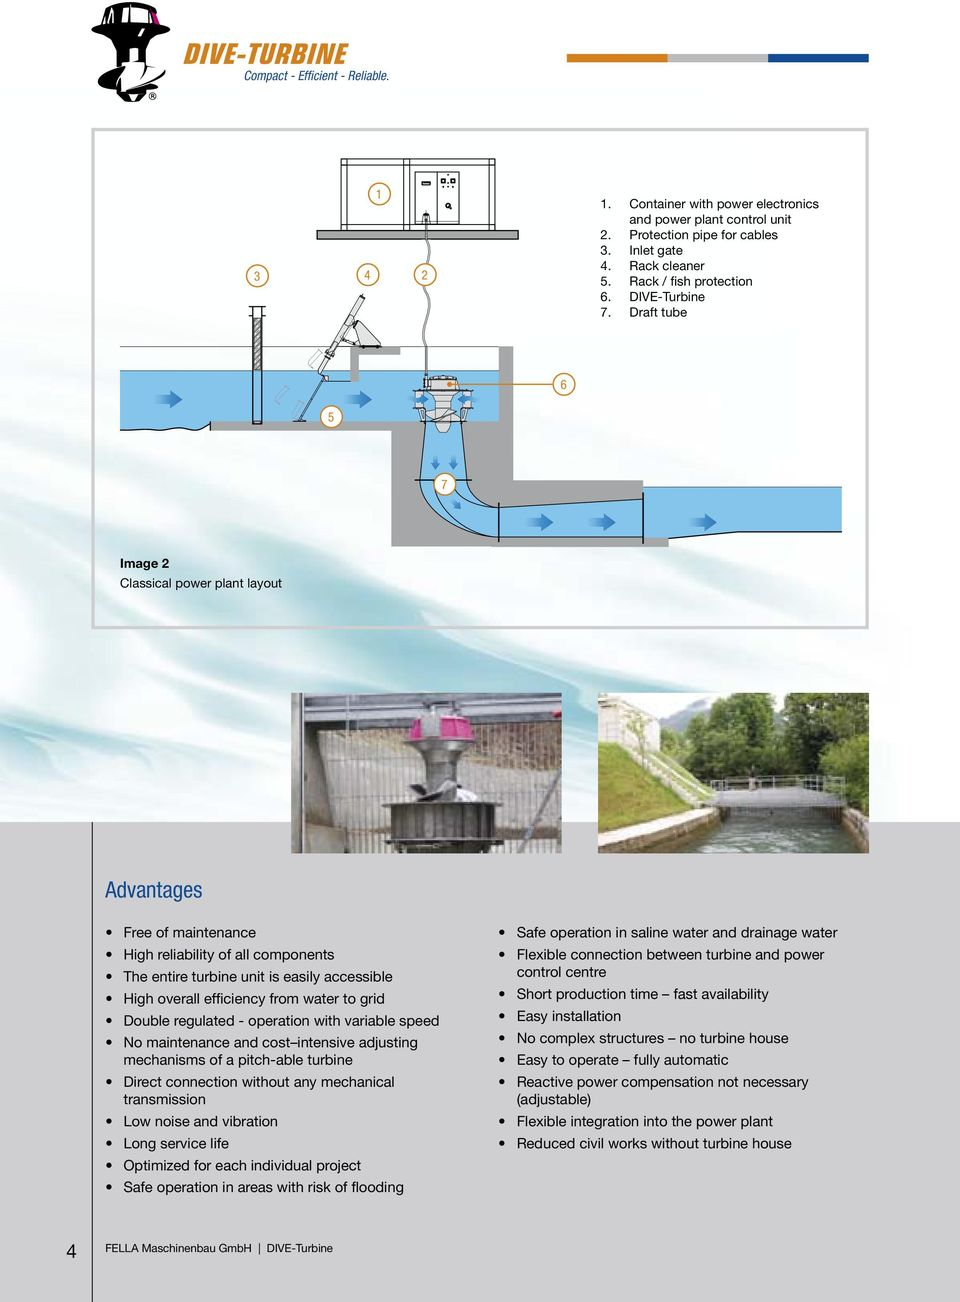 Compact Effi Cient Reliable Dive Turbine An Innovative Power Plant Layout Images To Grid Double Regulated Operation With Variable Speed No Maintenance And Cost Intensive Adjusting Mechanisms